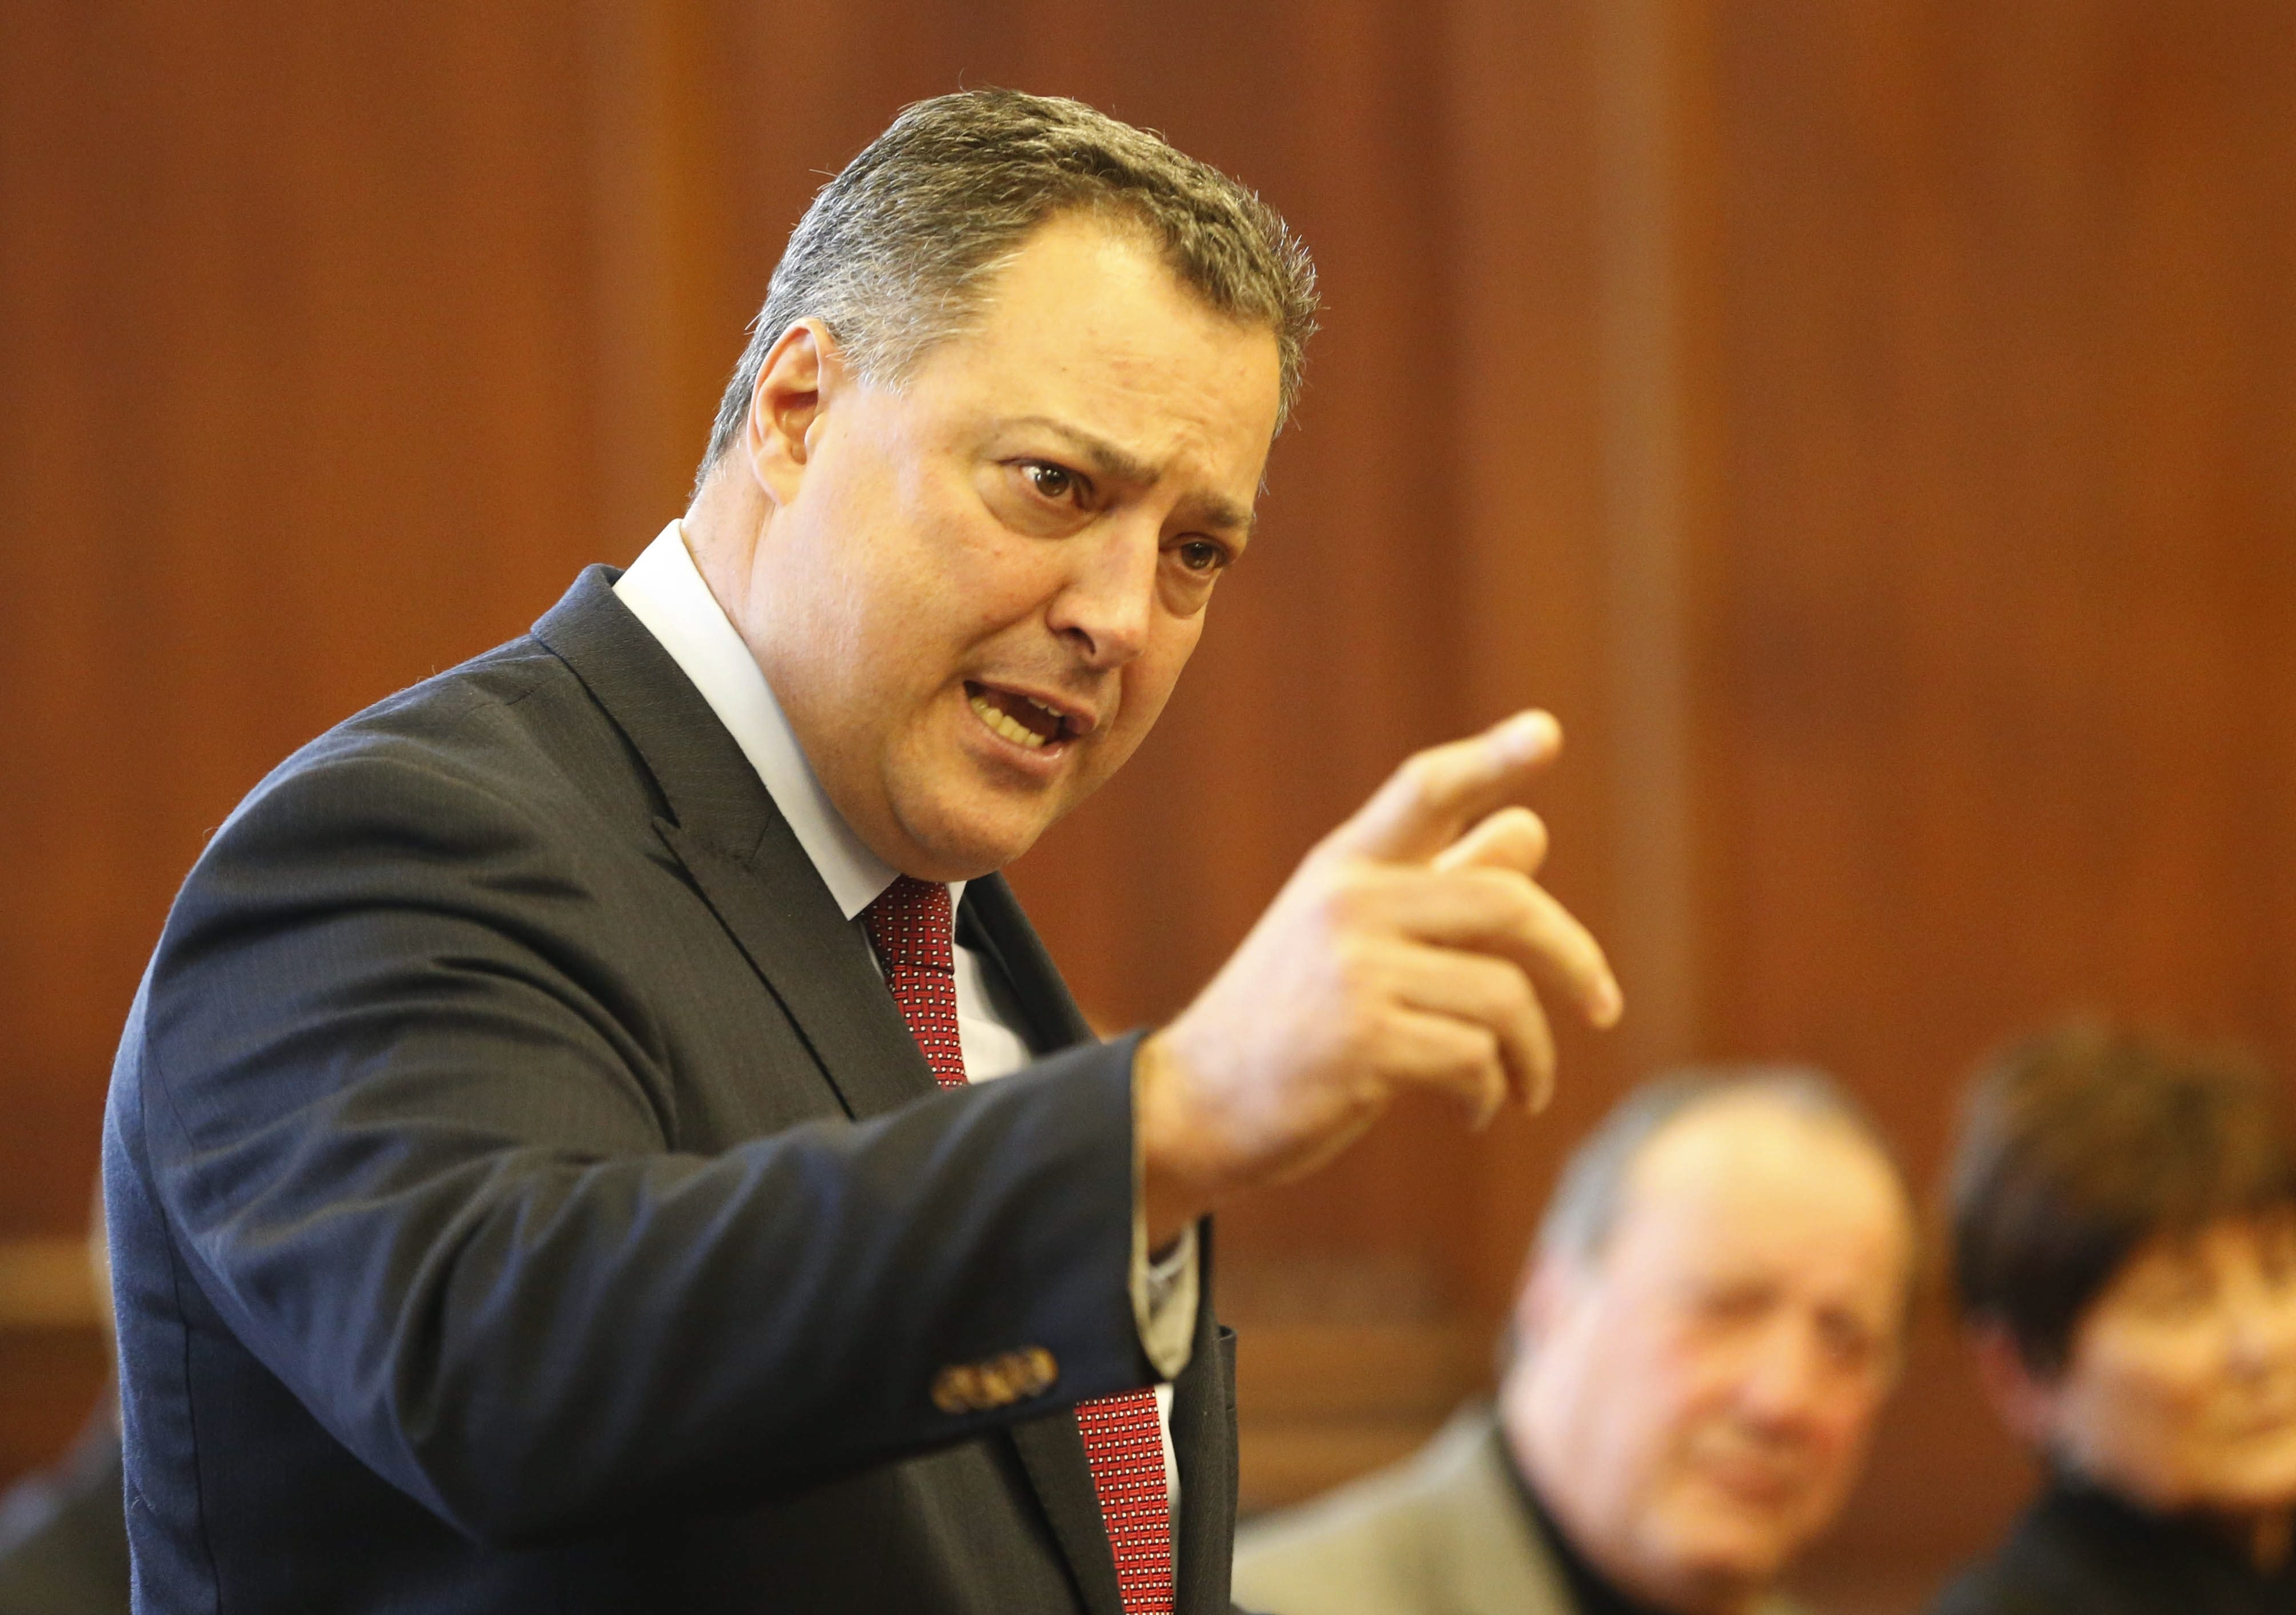 State Sen. Marc Panepinto's law firm specializes in Workers Compensation cases, yet he pushed the state Workers Compensation Board to drop plans to change reimbursement rates.(Derek Gee/Buffalo News file photo)